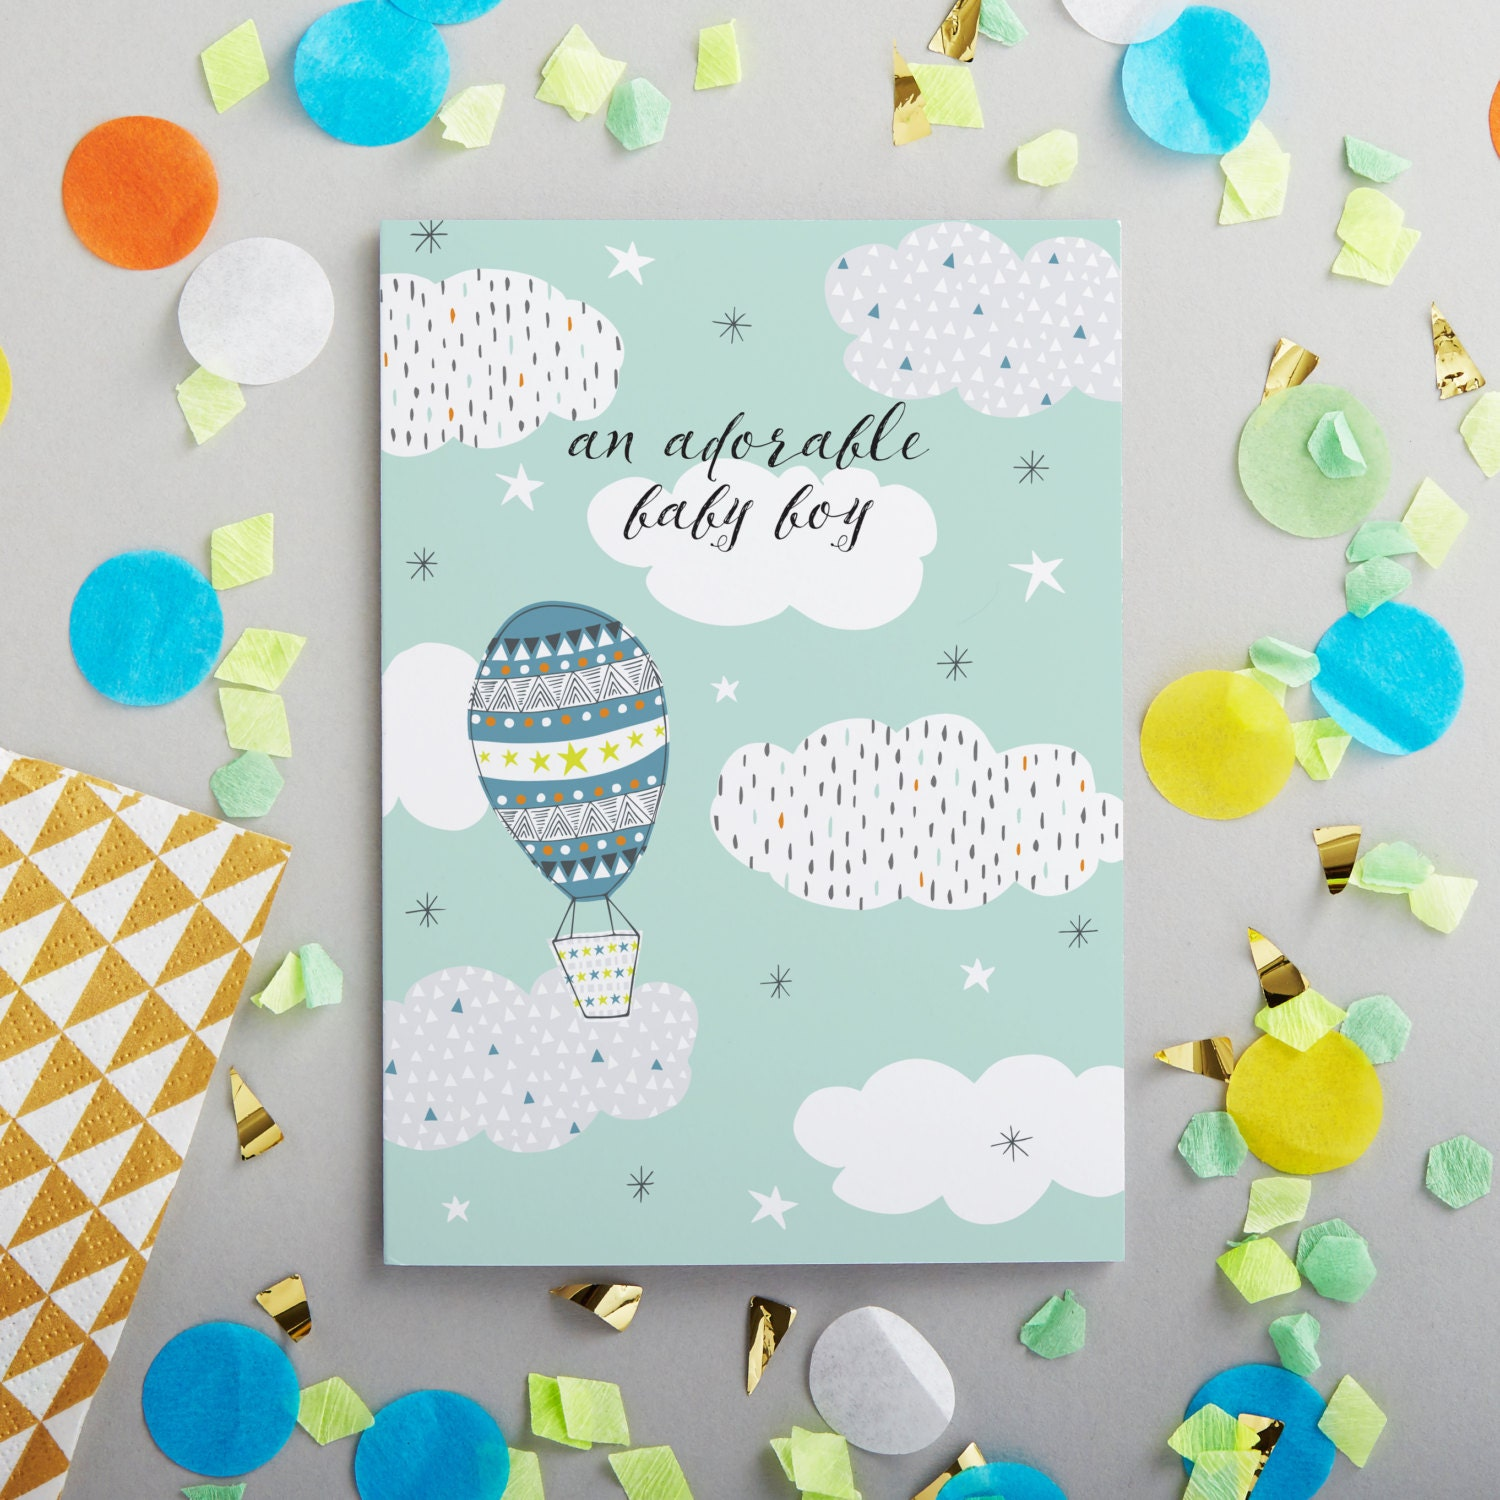 Cute new baby greetings card design led stationery printed details this new baby greeting kristyandbryce Gallery